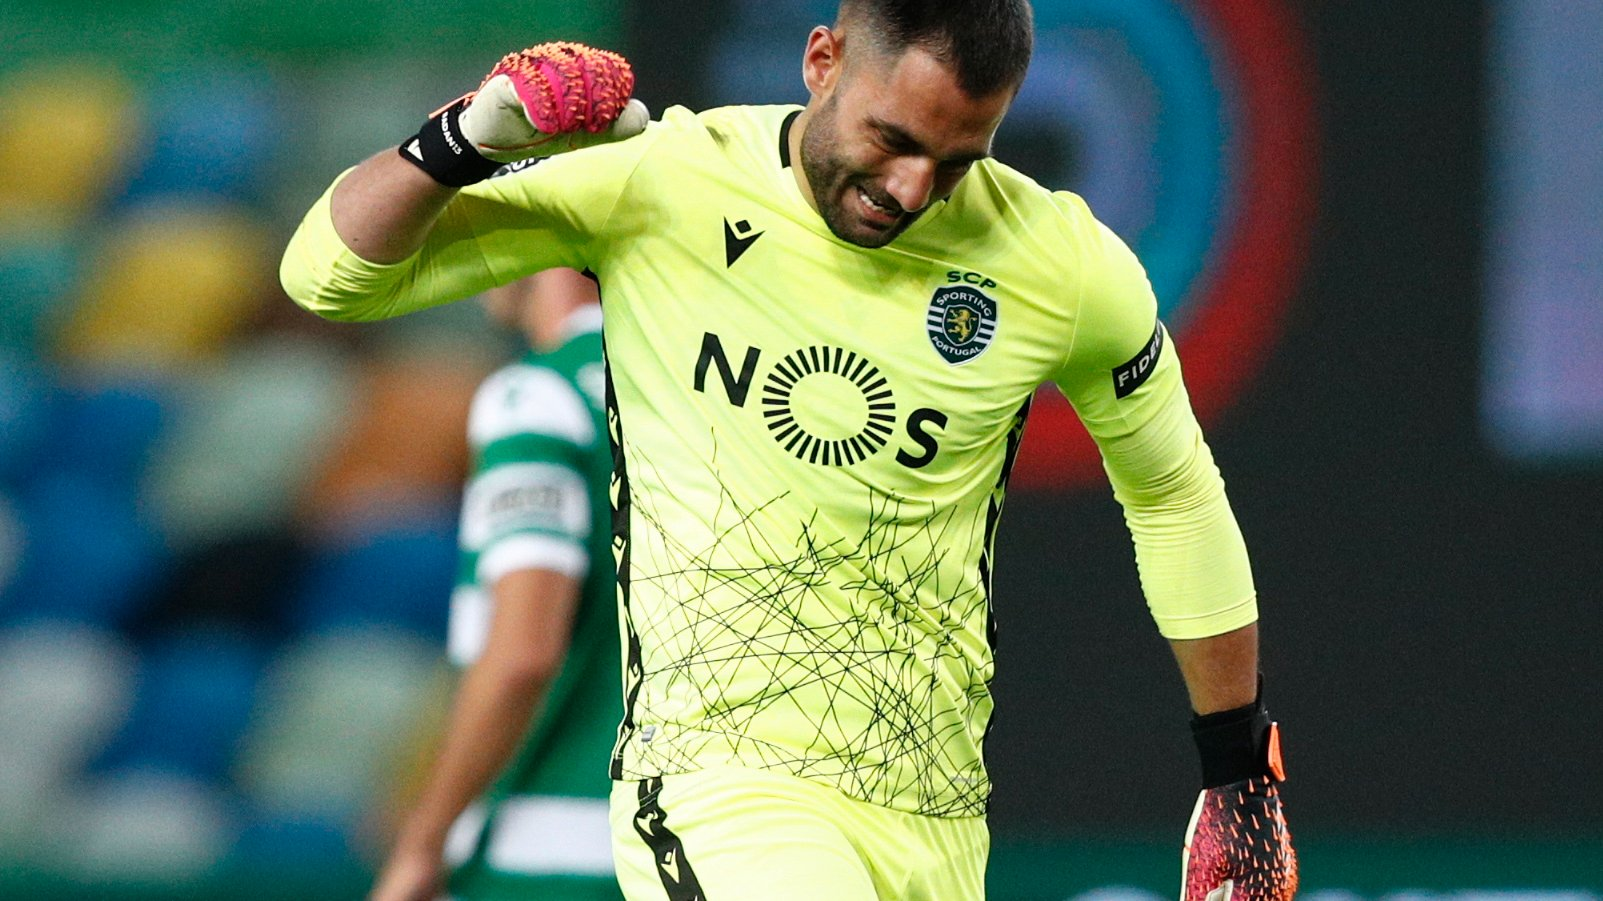 epa09151509 Sporting goalkeeper Antonio Adan reacts after conceding a goal to Belenenses SAD during their Portuguese First League soccer match held at Alvalade Stadium in Lisbon, Portugal, 21 April 2021.  EPA/ANTONIO COTRIM